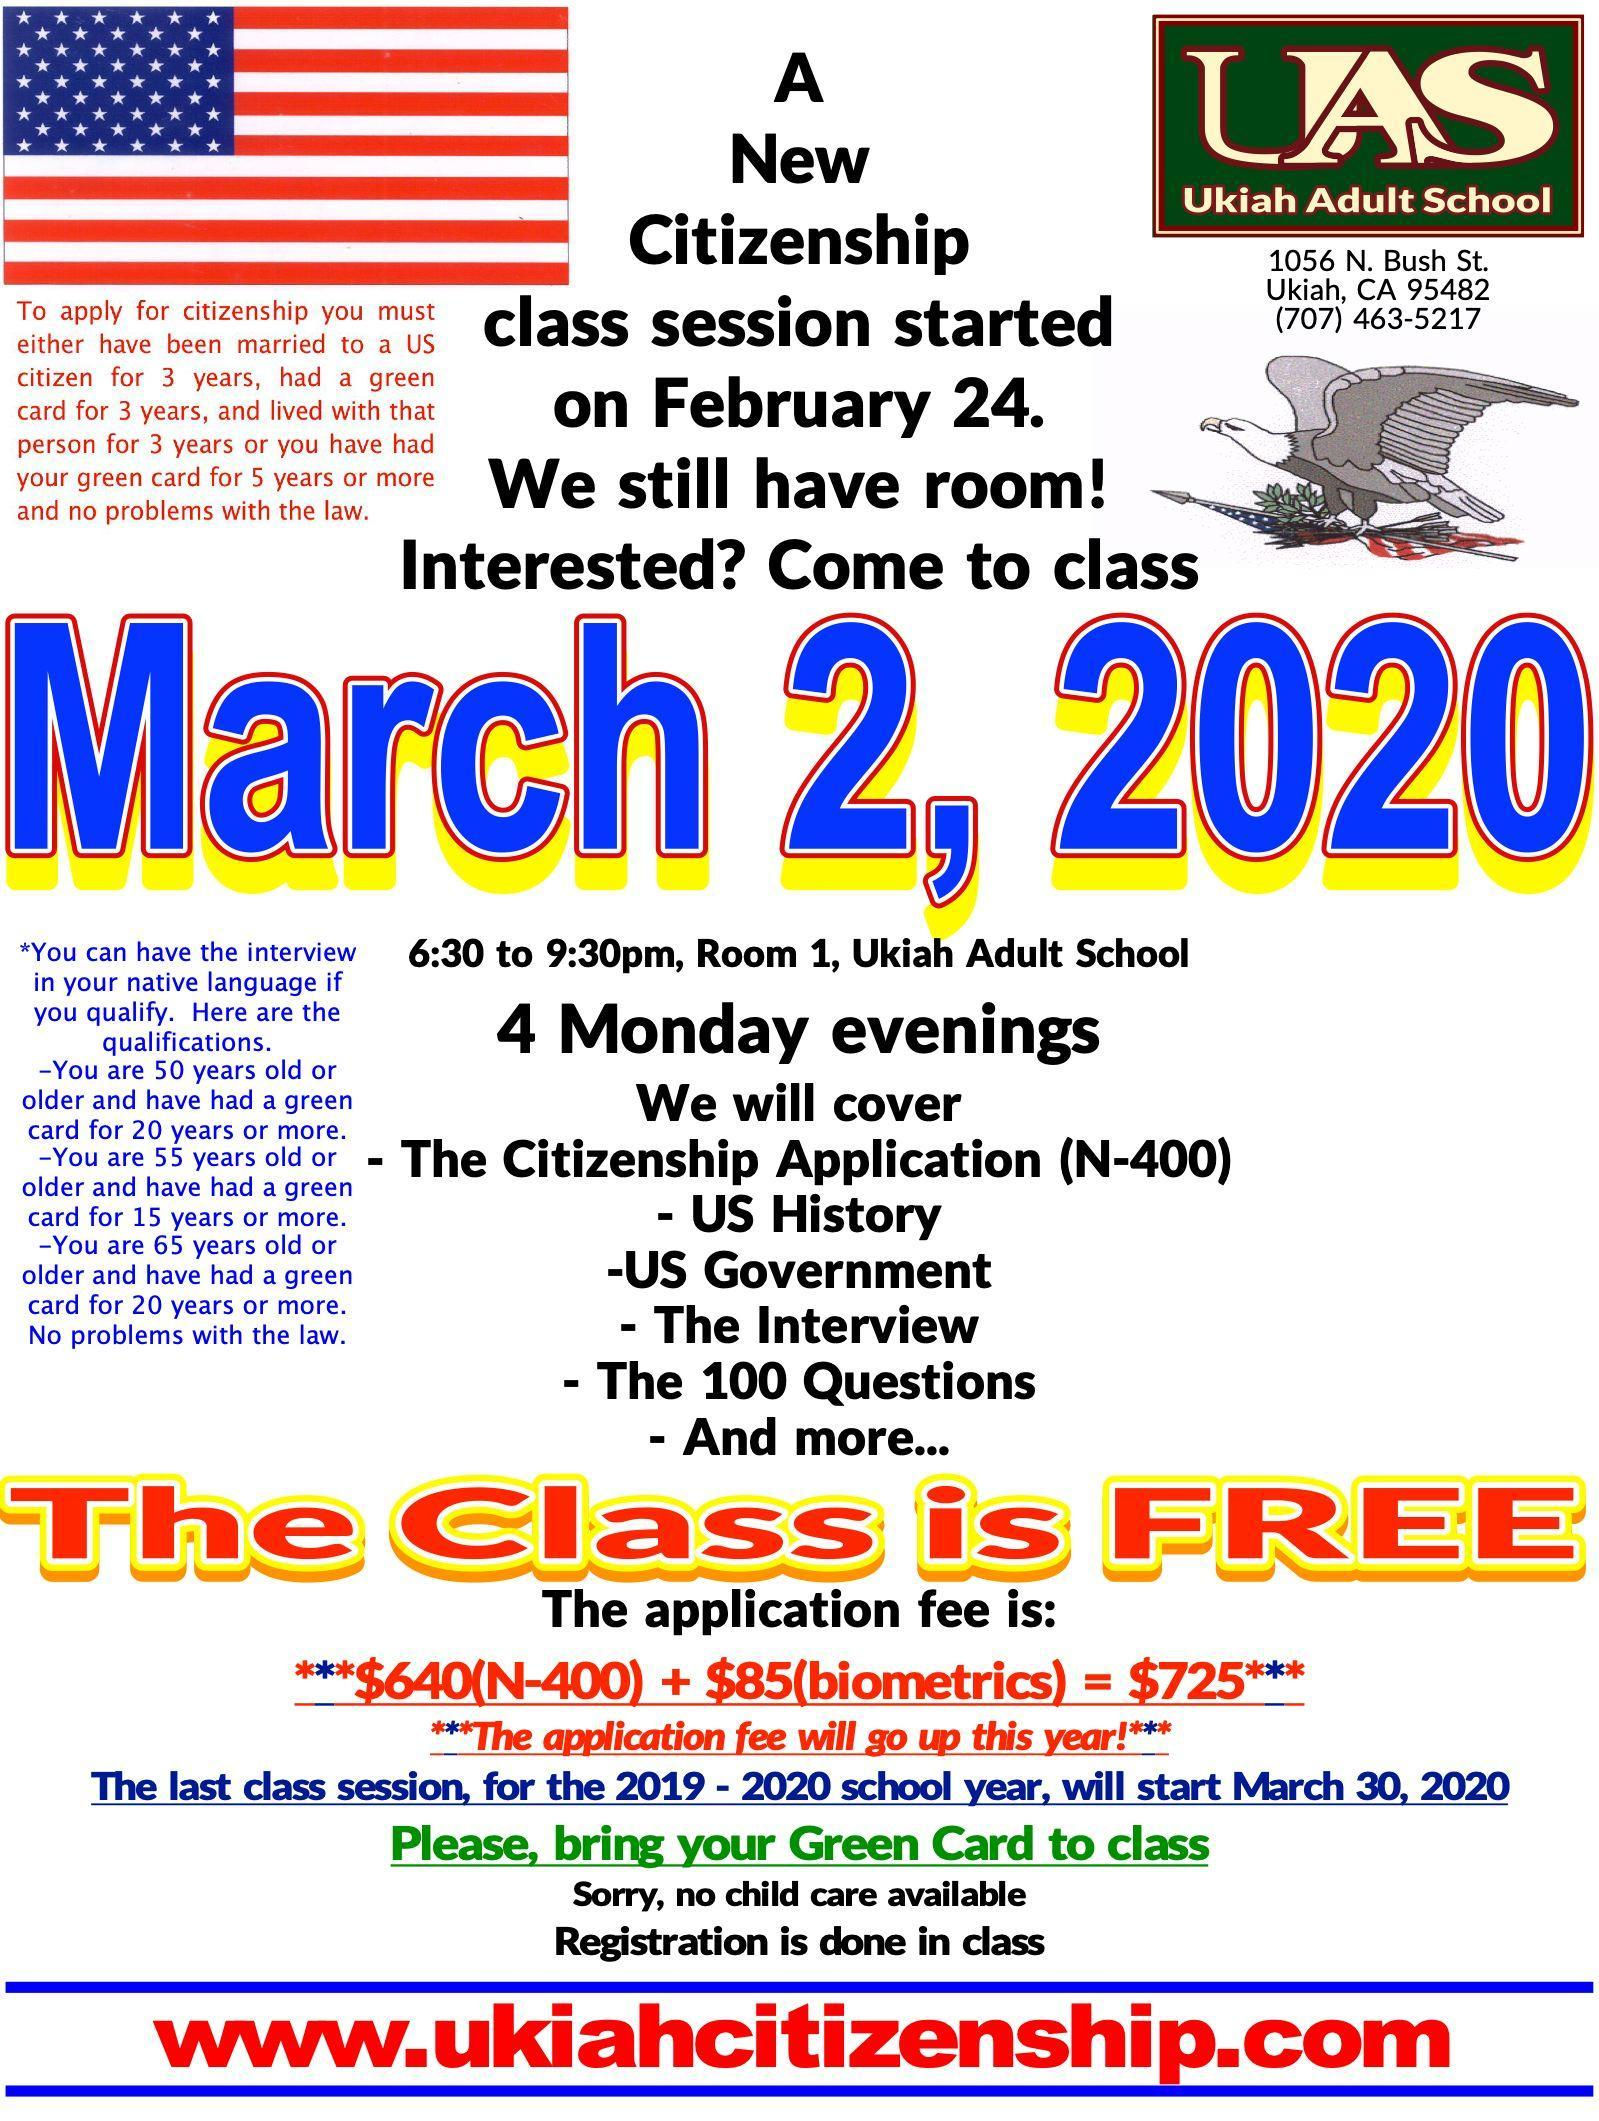 Poster annoucing the fact that the current class session starrted on 02/24/2020 and that there is still room so if interested come to class on 03/02/2020